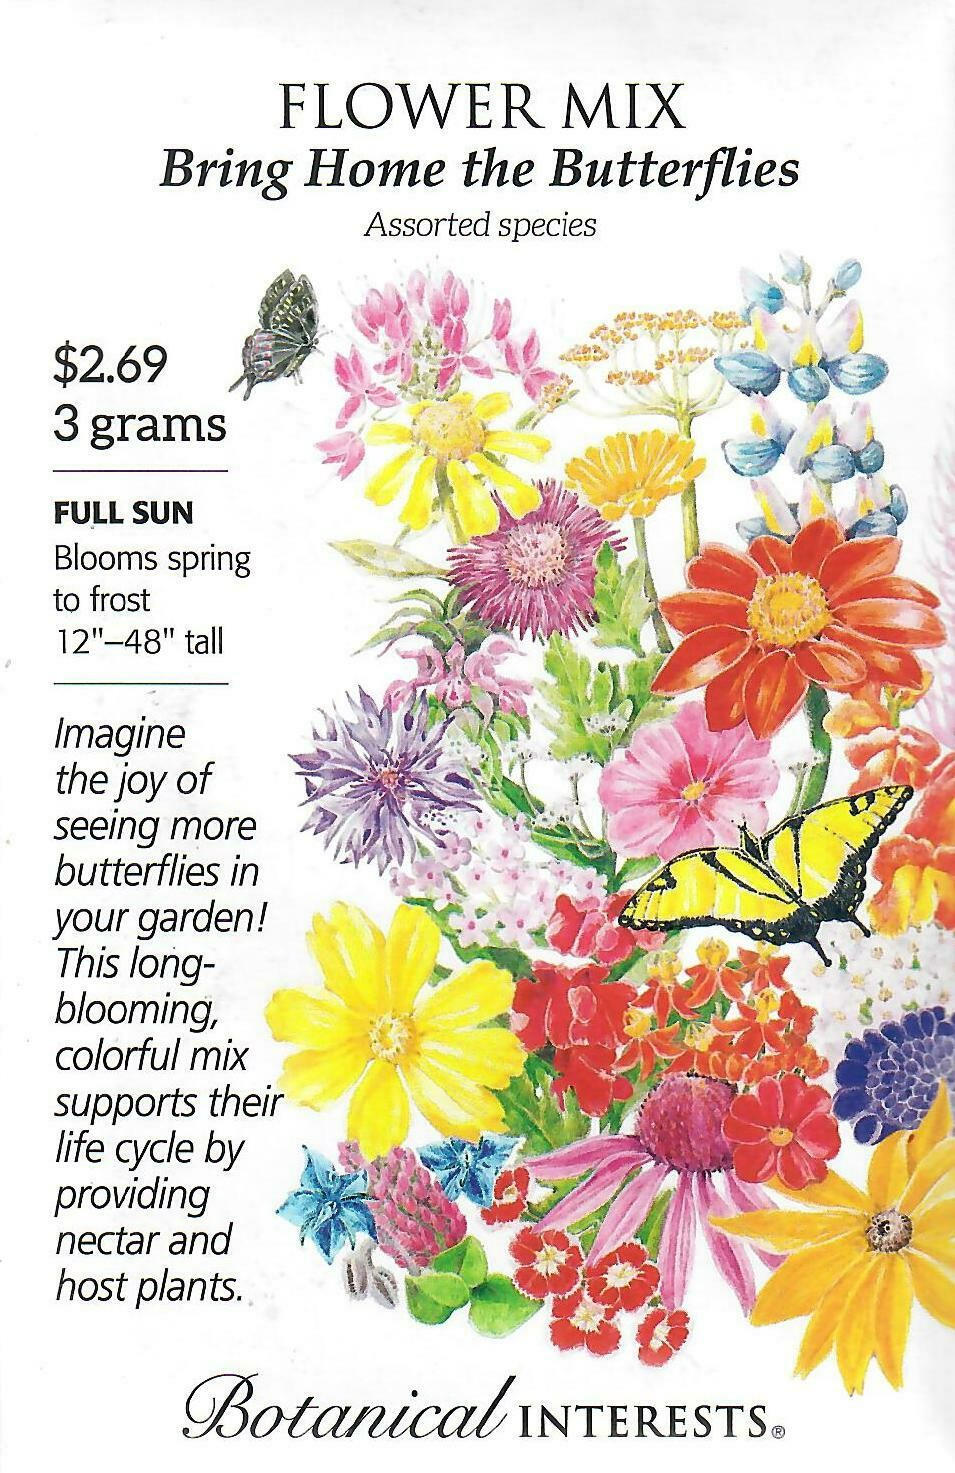 Flower Mix Bring Home Butterfly Botanical Interests